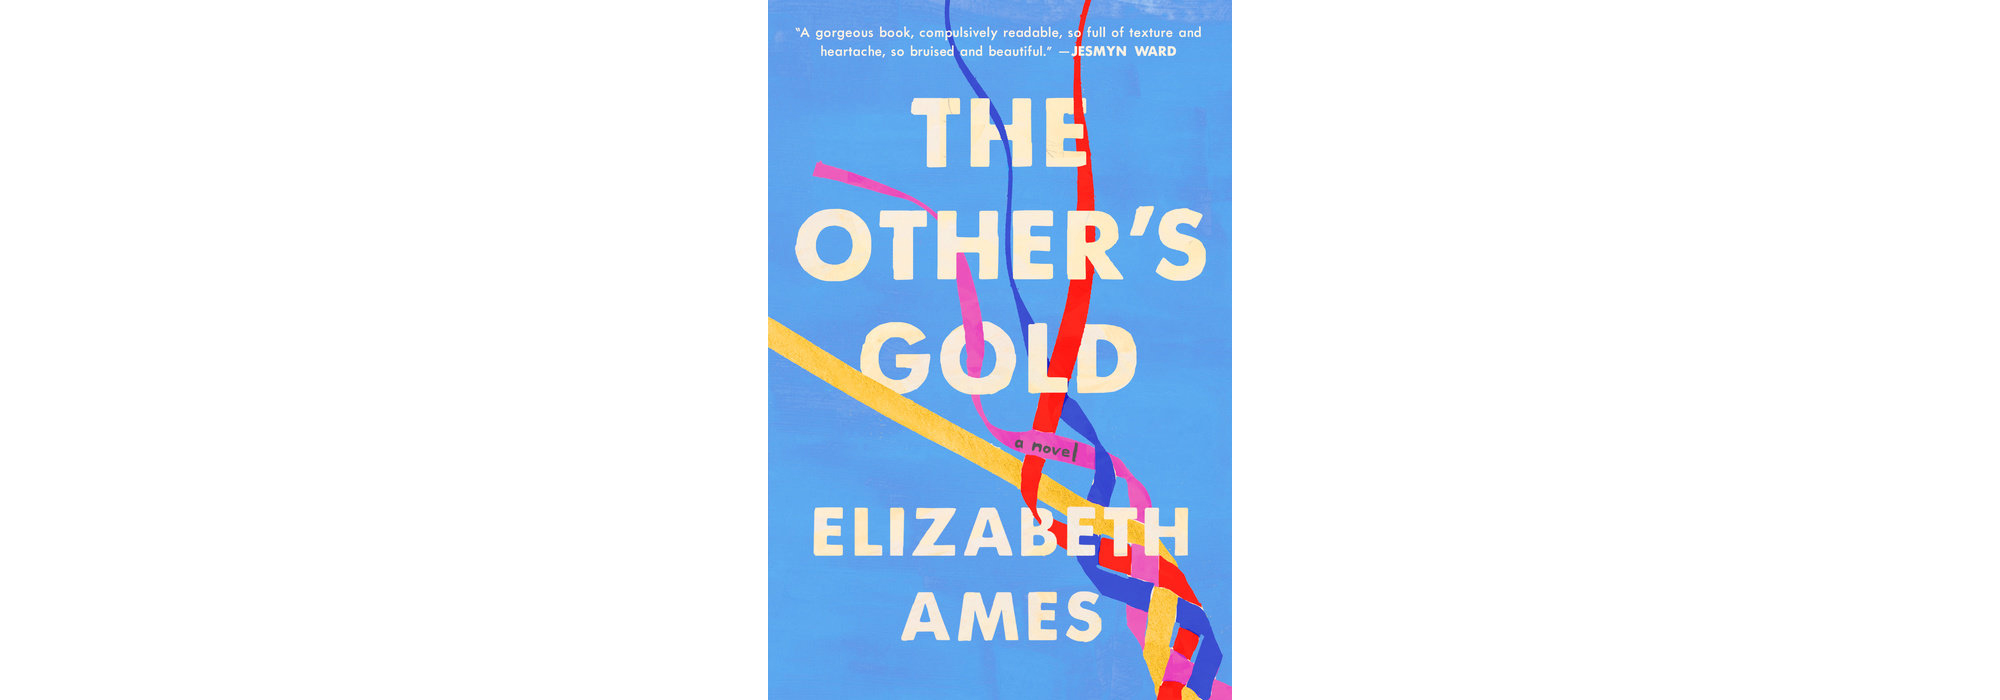 The Other's Gold, by Elizabeth Ames